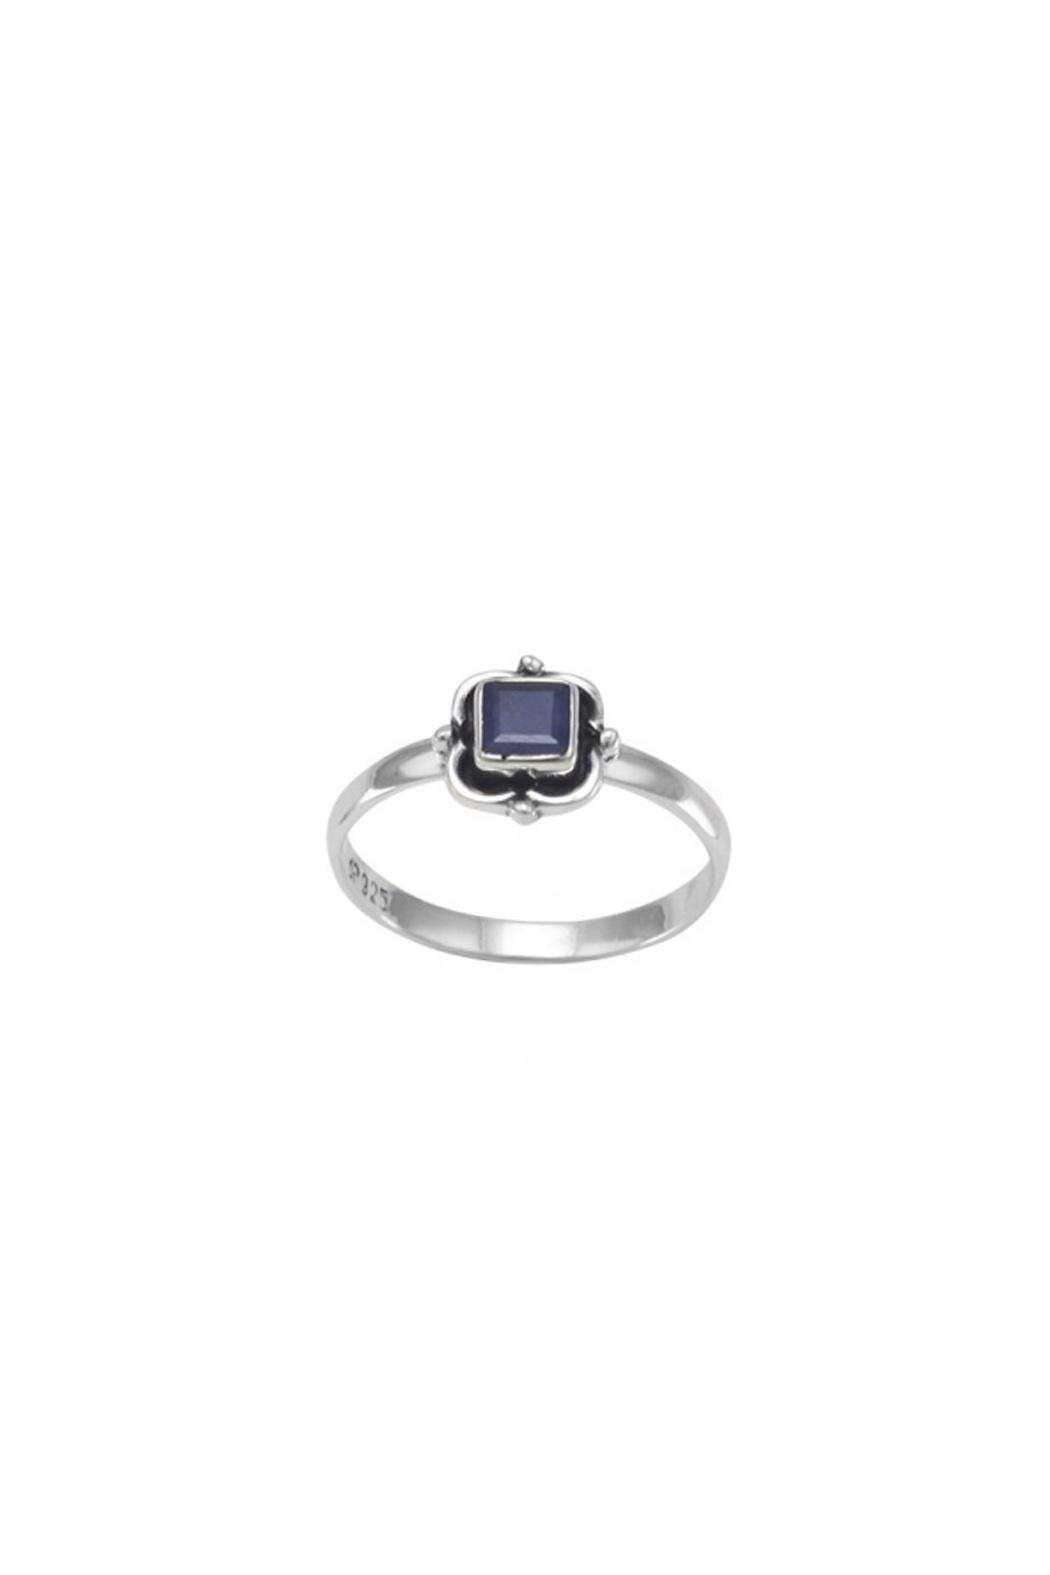 Wild Lilies Jewelry  Square Sapphire Ring - Main Image